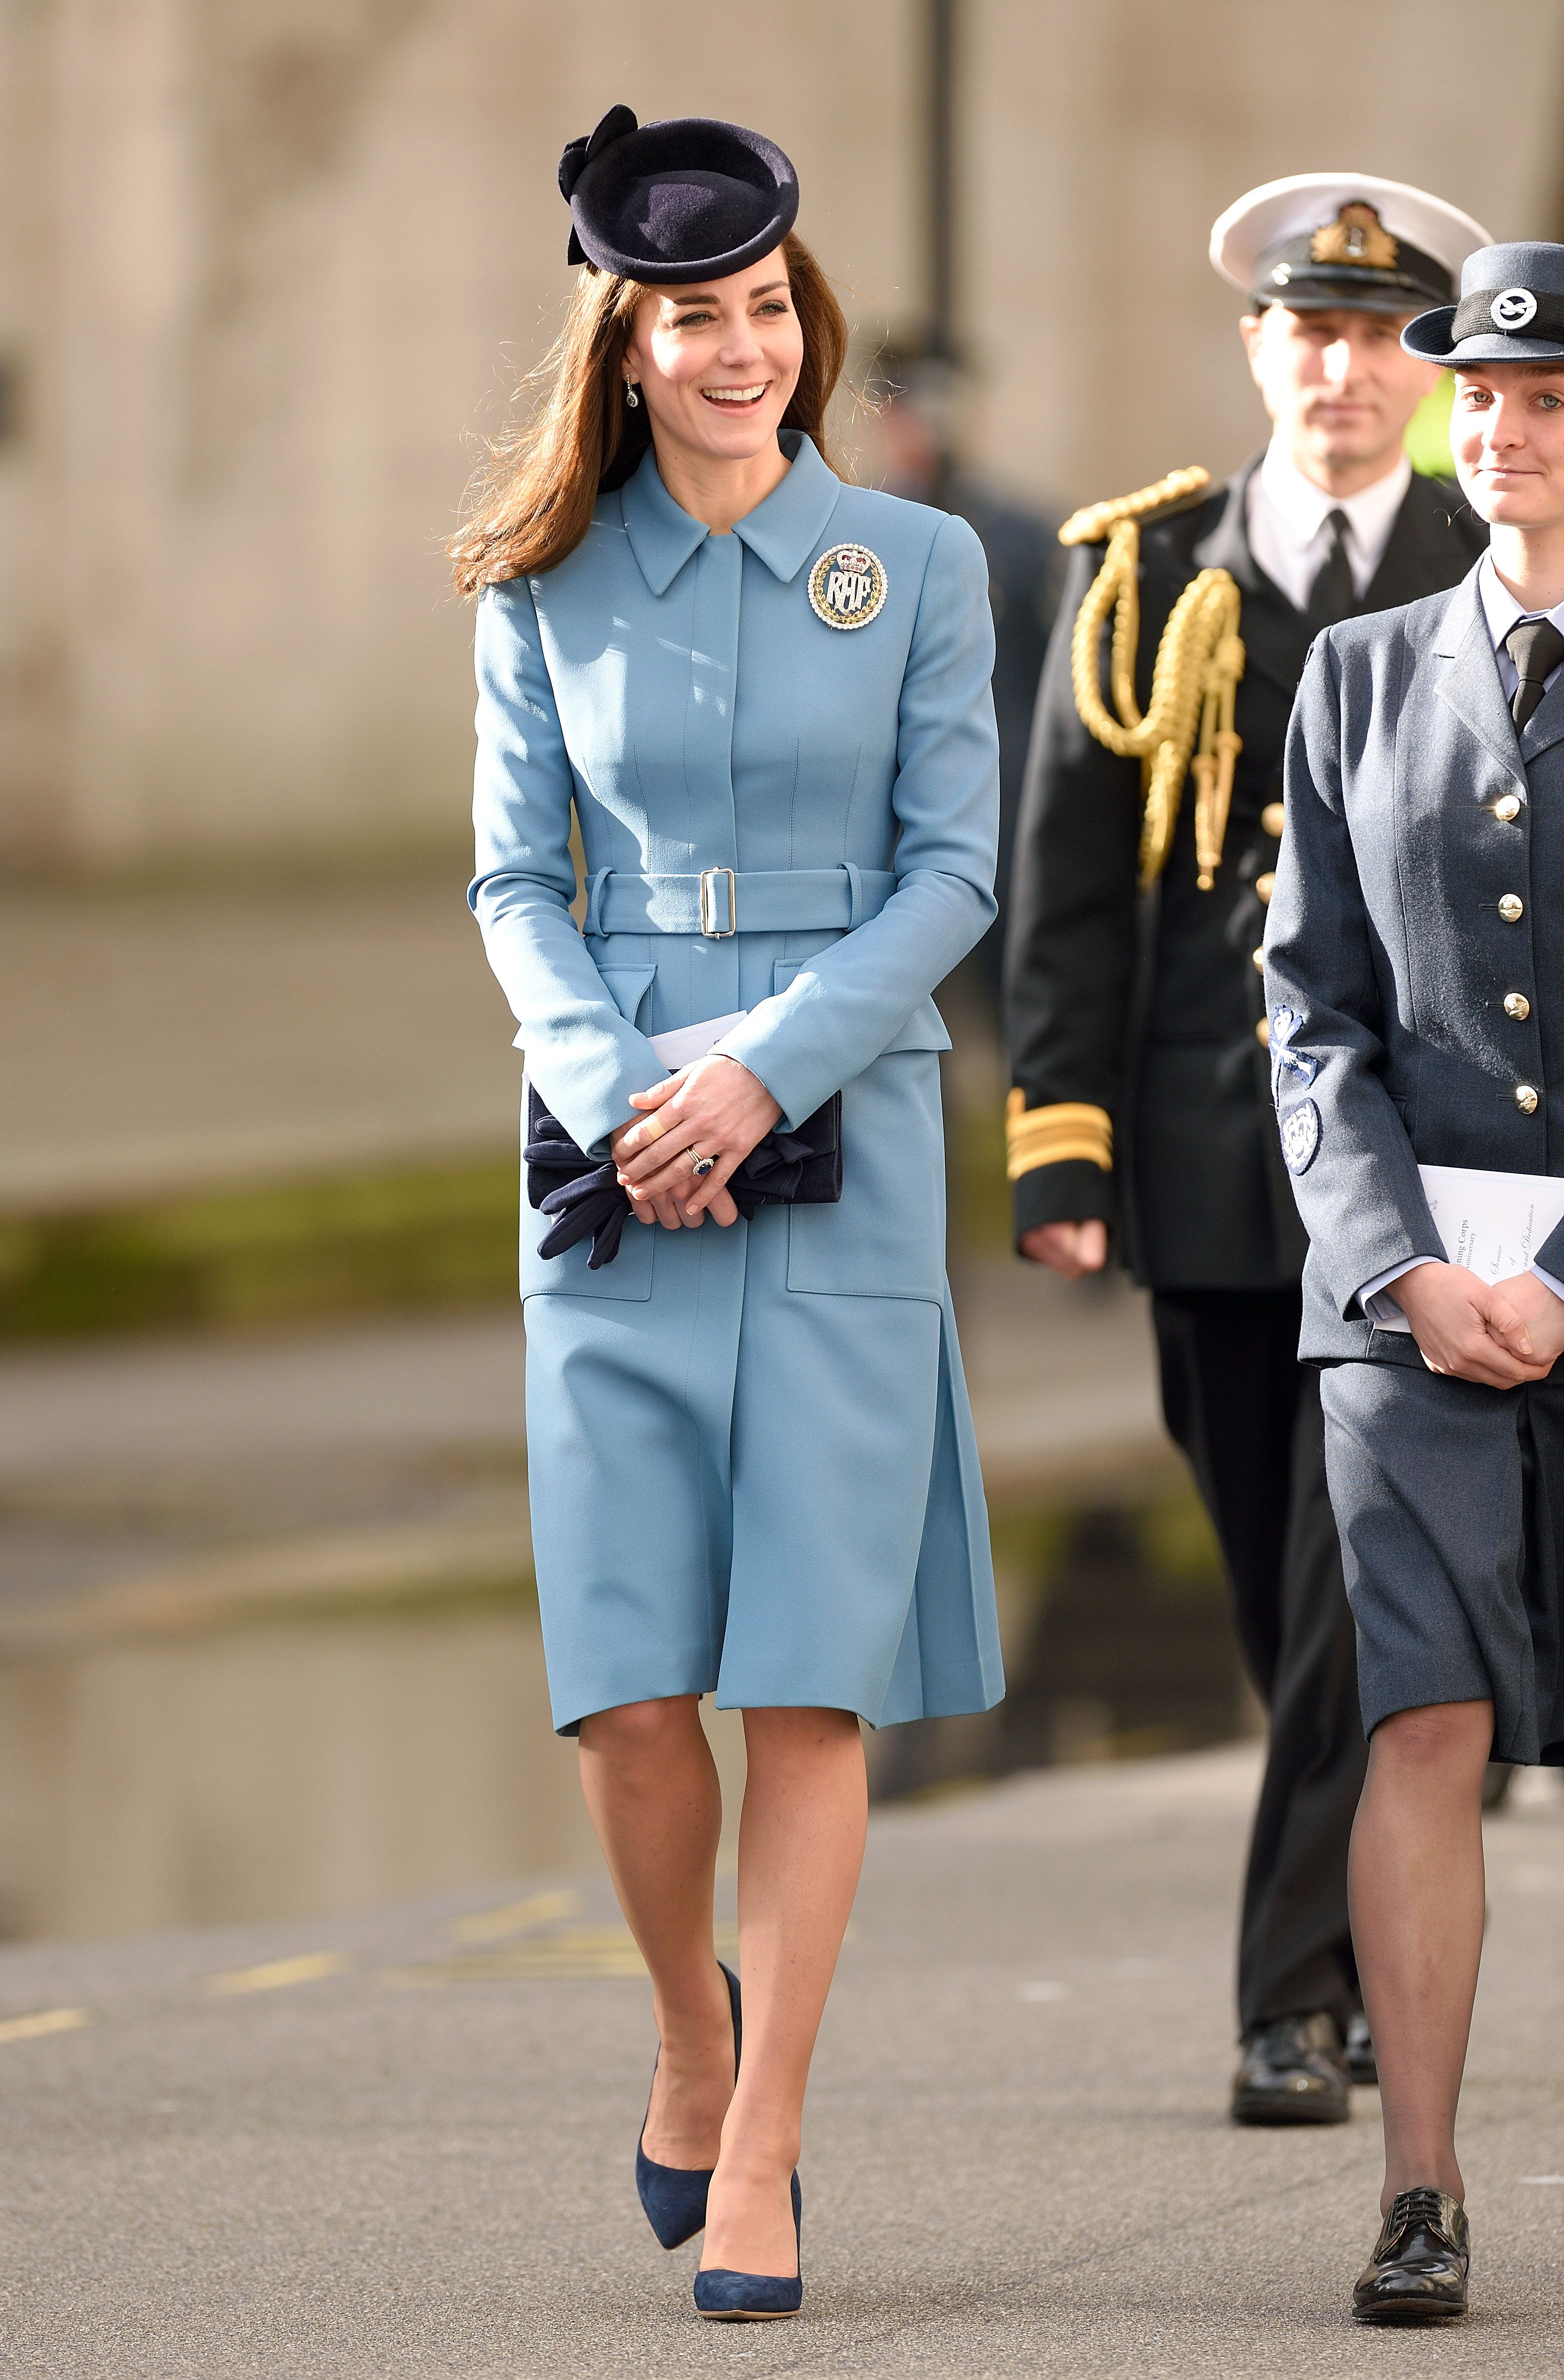 Kate Middleton S 22 Most Controversial Outfits Kate Middleton Outfits Kate Middleton Style Fashion